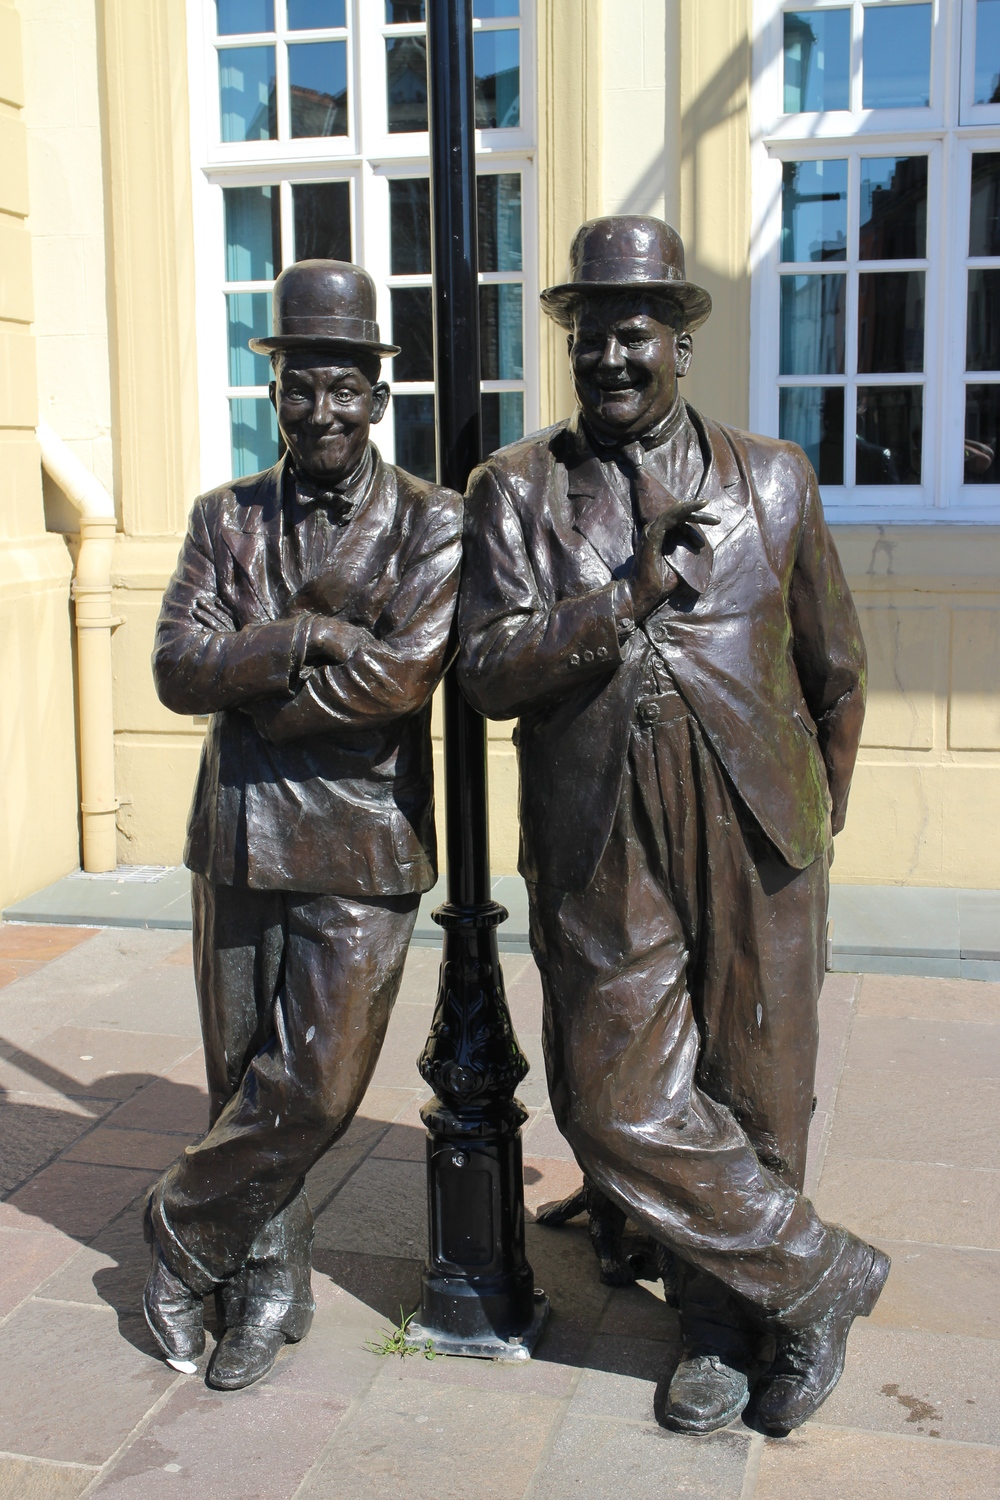 This 2009 statue of Laurel and Hardy was unveiled after a decade of fundraising